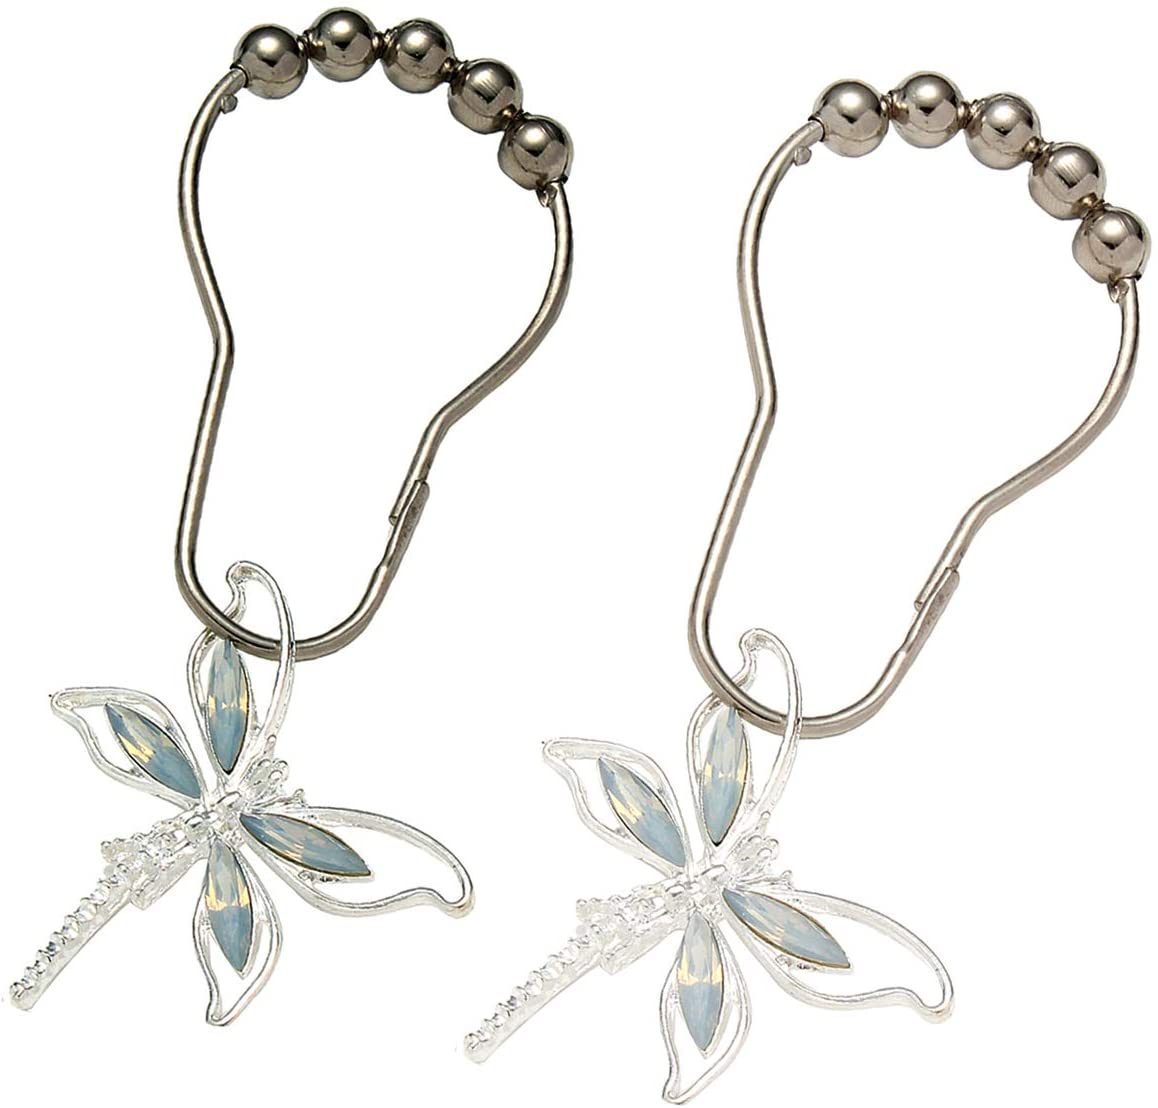 Brushed Nickel Rings with Rhinestones Dragonfly Pendant,Rust Proof Silver Metal Curtain Hangers Aimoye Crystal Dragonfly Shower Curtain Hooks